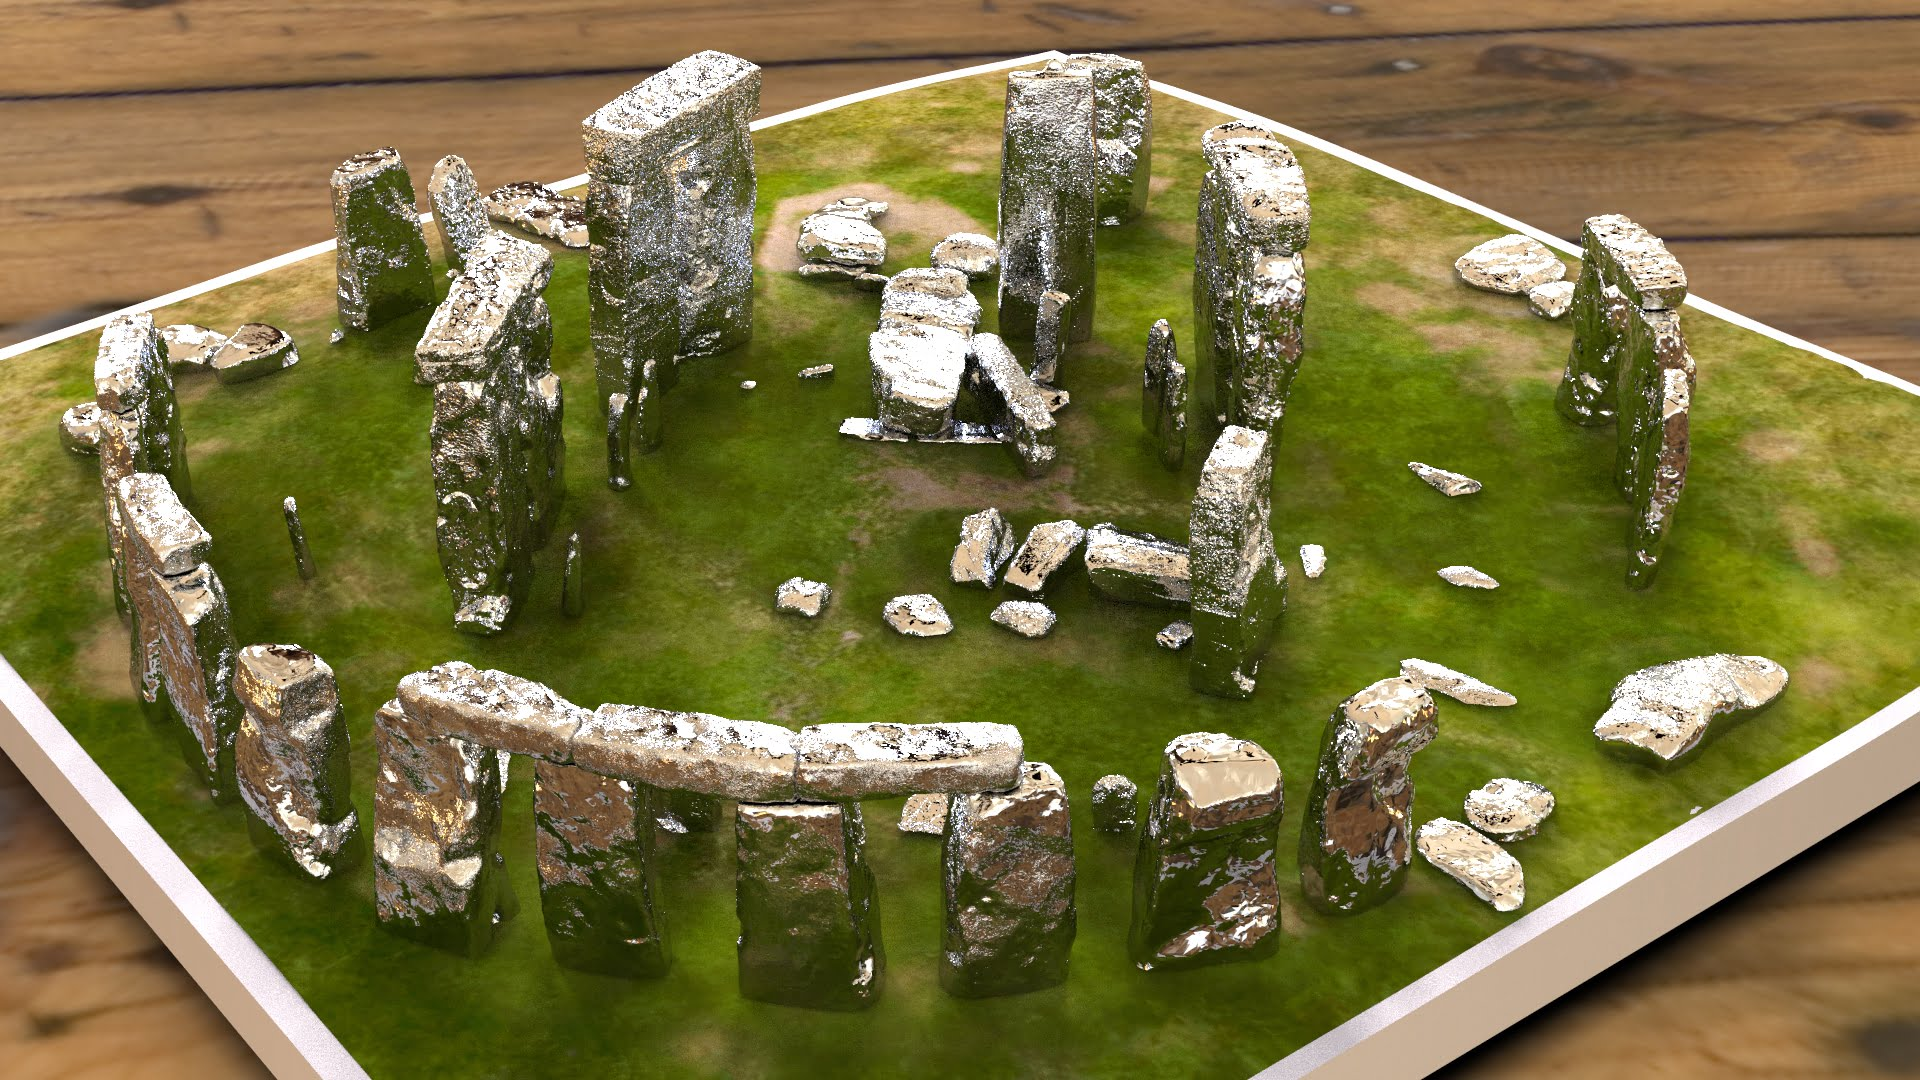 Buy Stonehenge Models: Silver Stonehenge replica models at 200th scale 004  - 200th scale pick n mix -